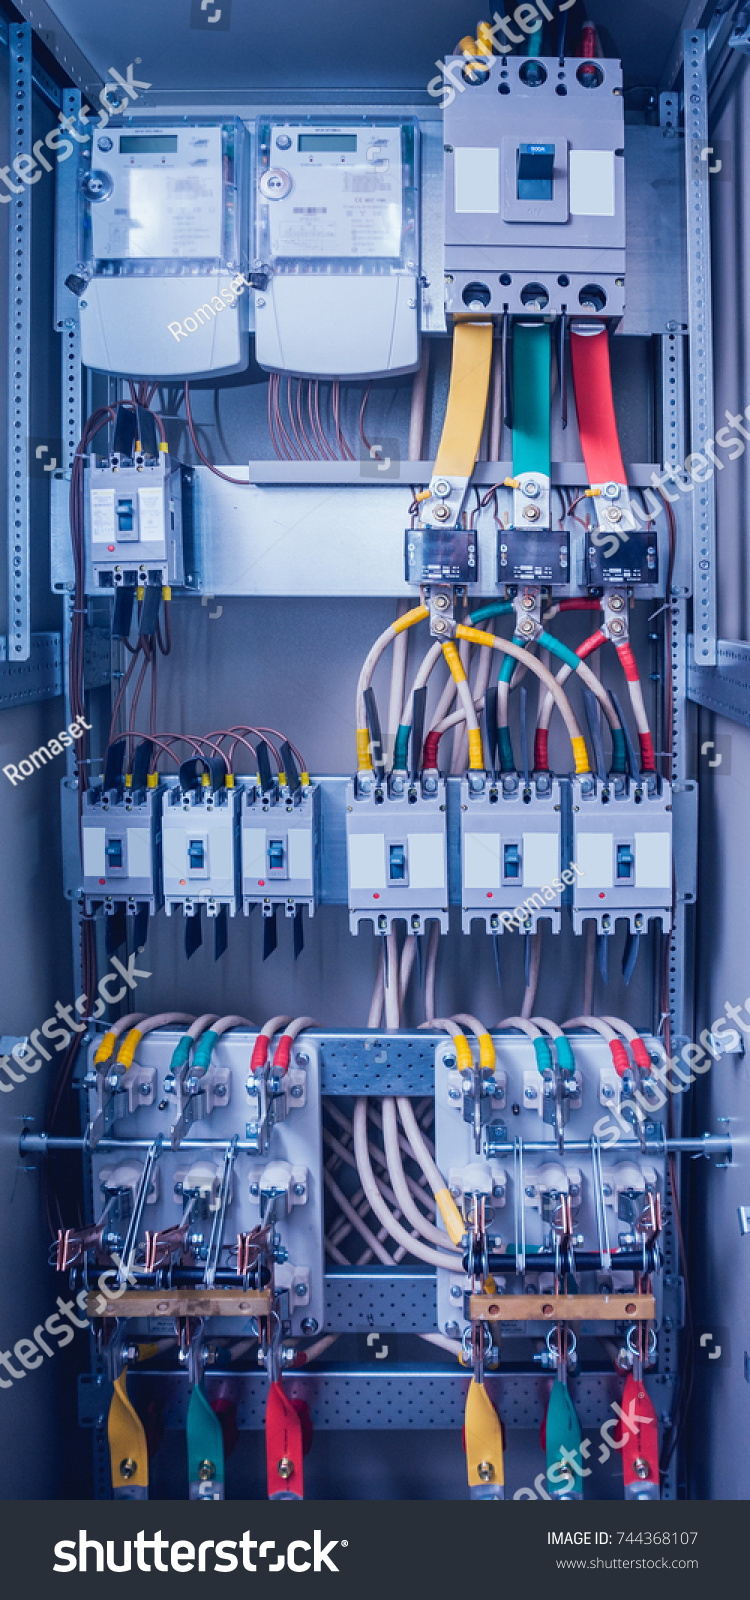 hight resolution of wires and switches in electric box electrical panel with fuses and